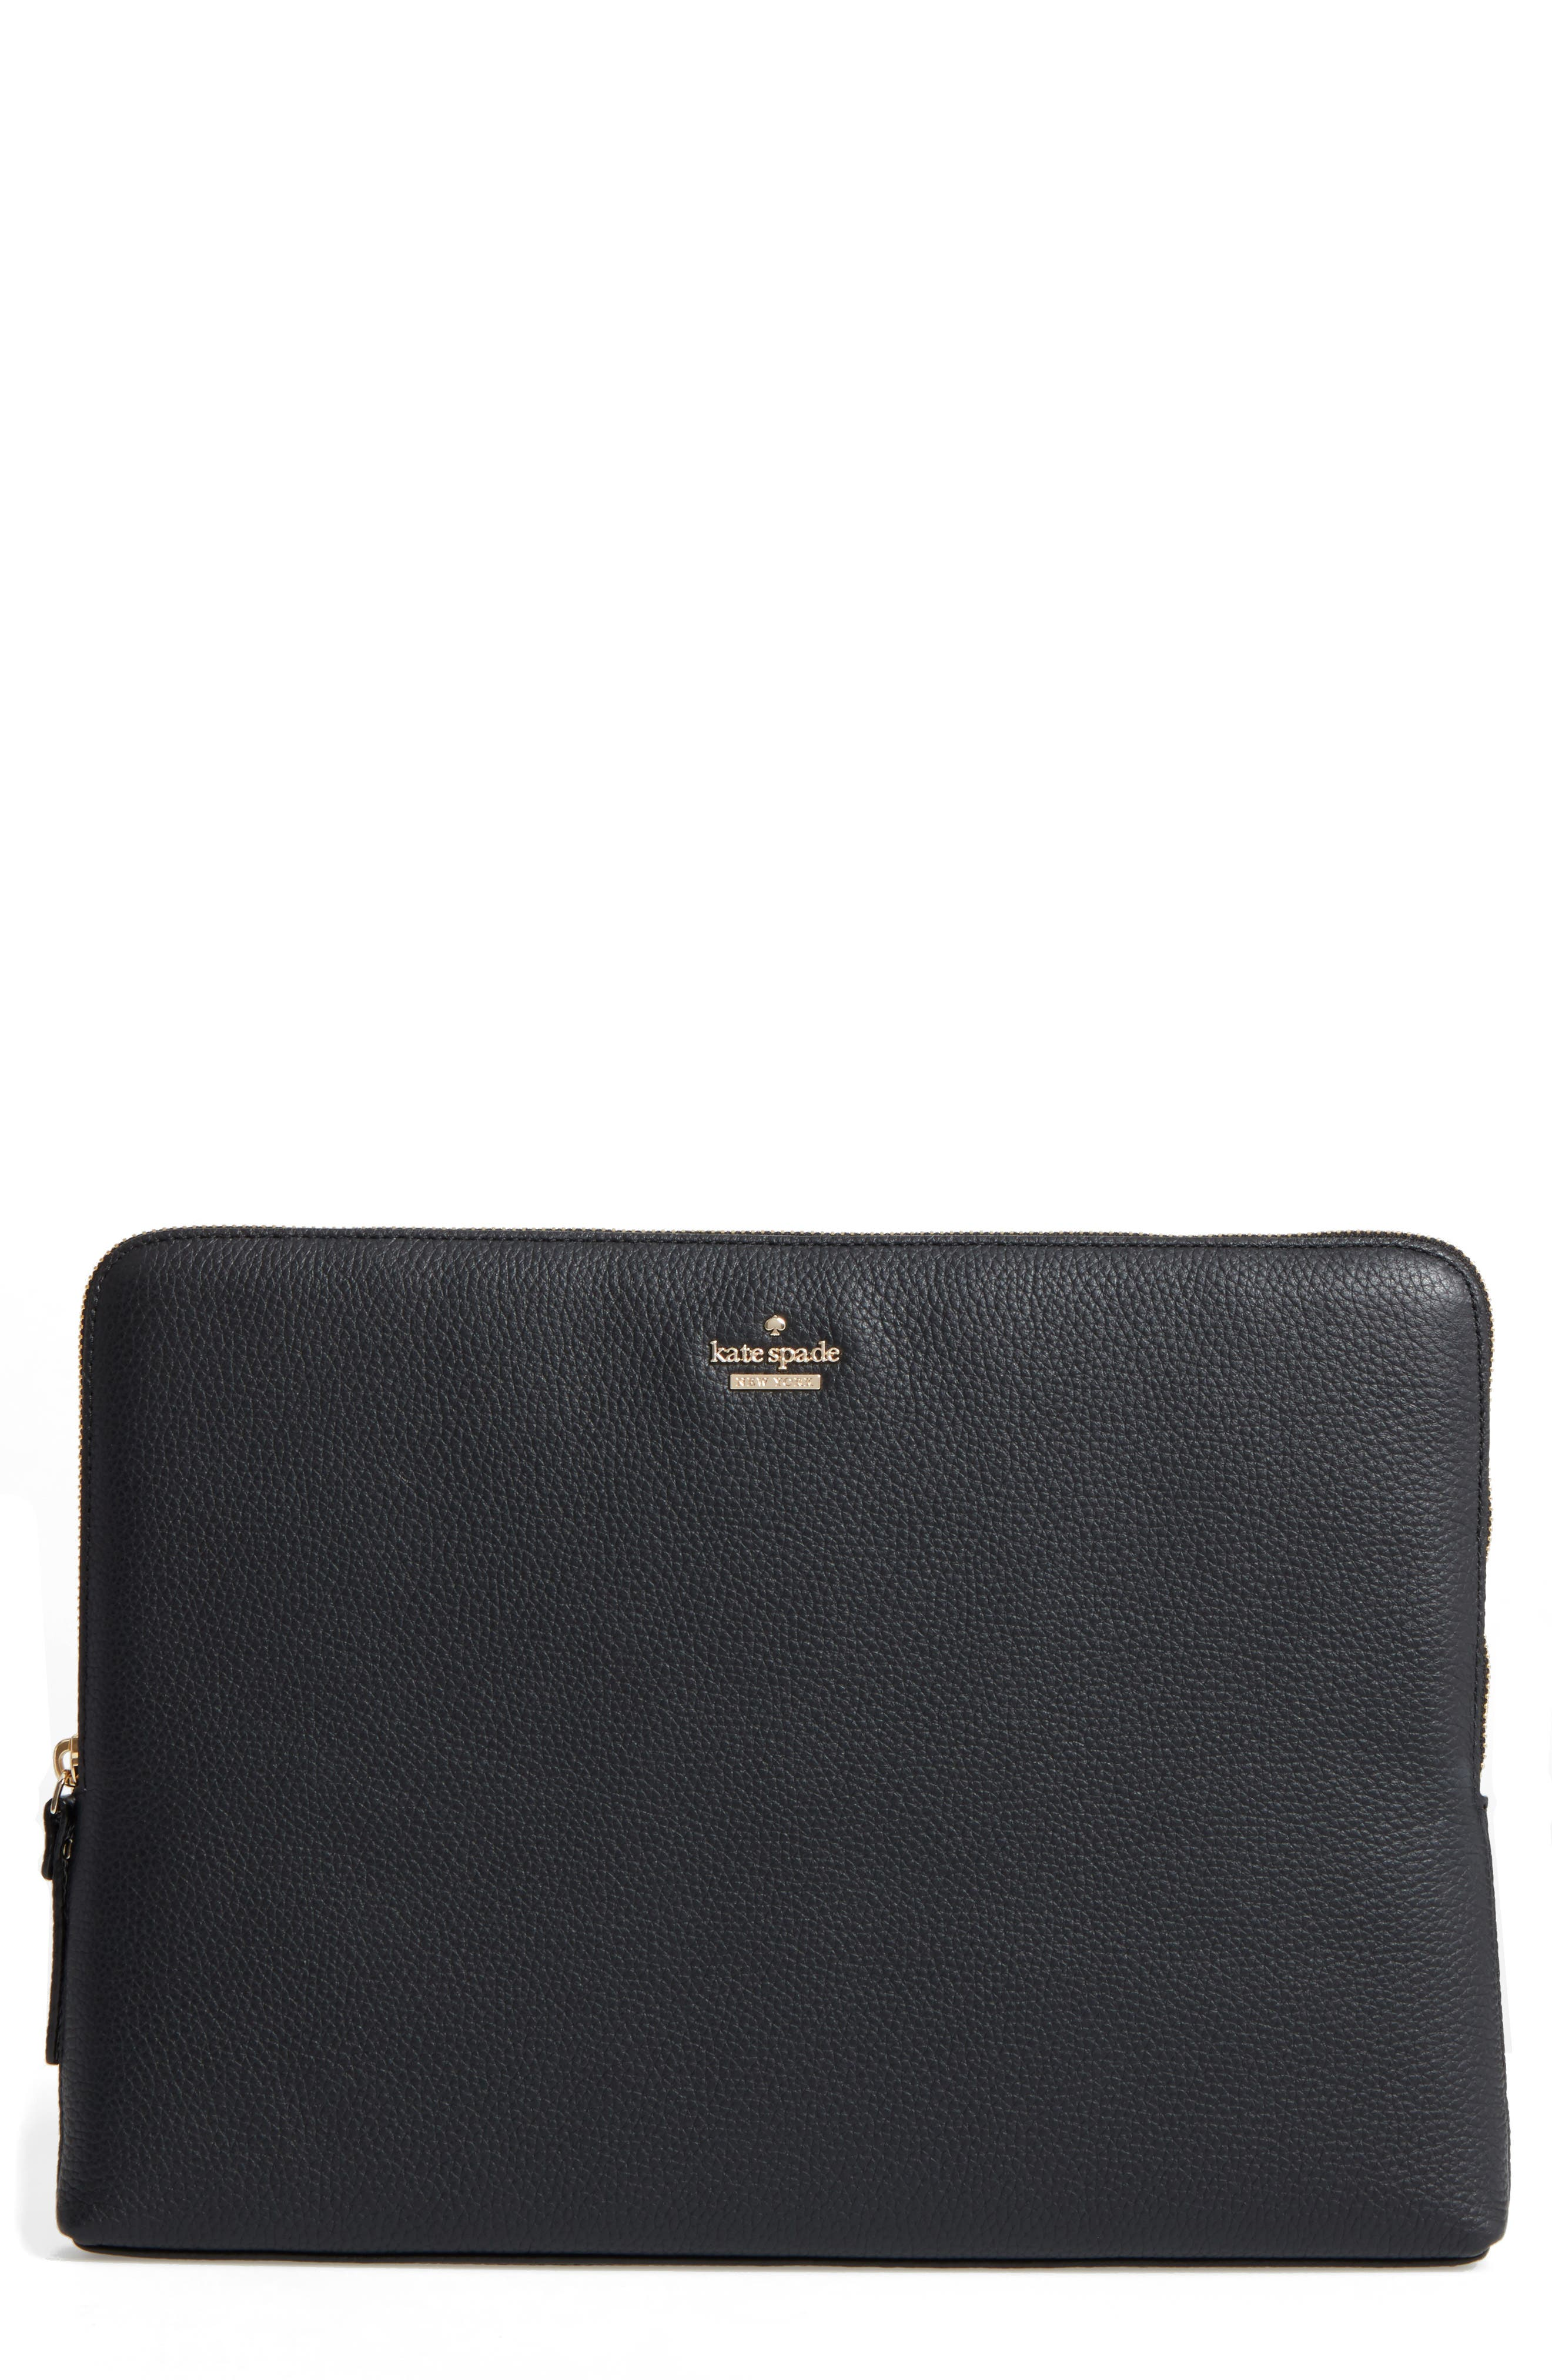 kate spade new york 13-inch leather laptop sleeve